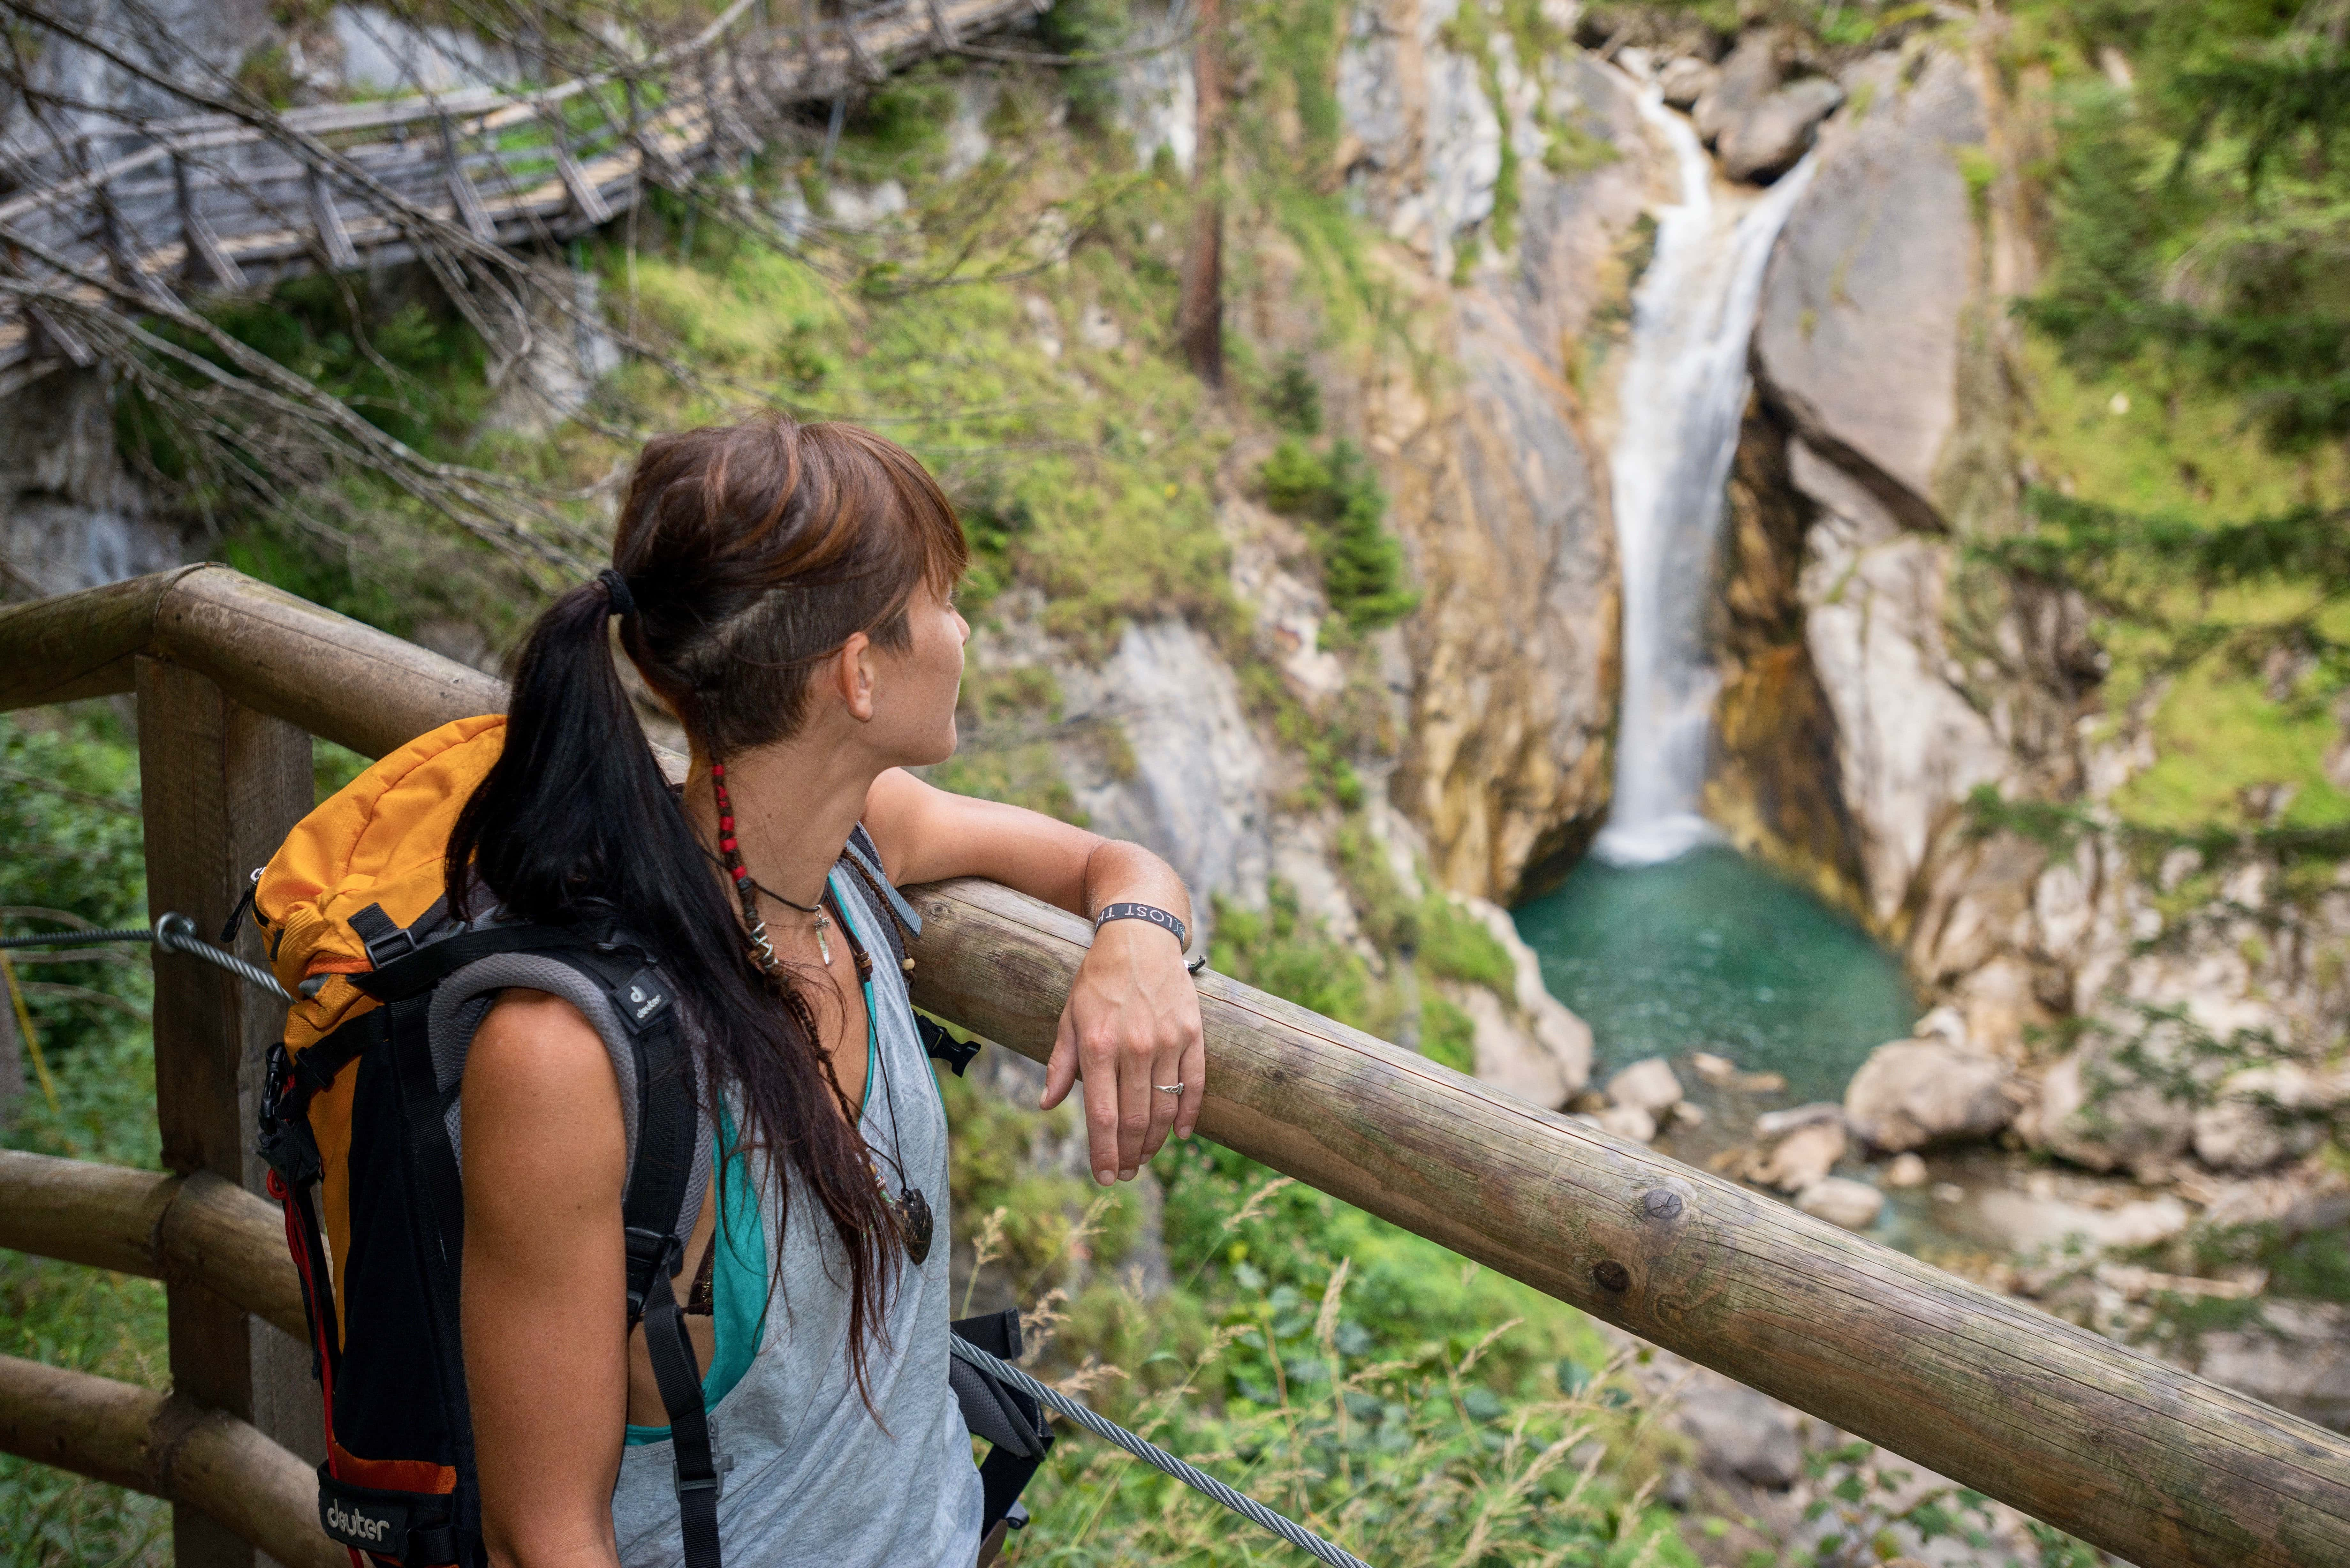 walking holidays for solo walkers, solo walking holidays, walking holidays solo walkers